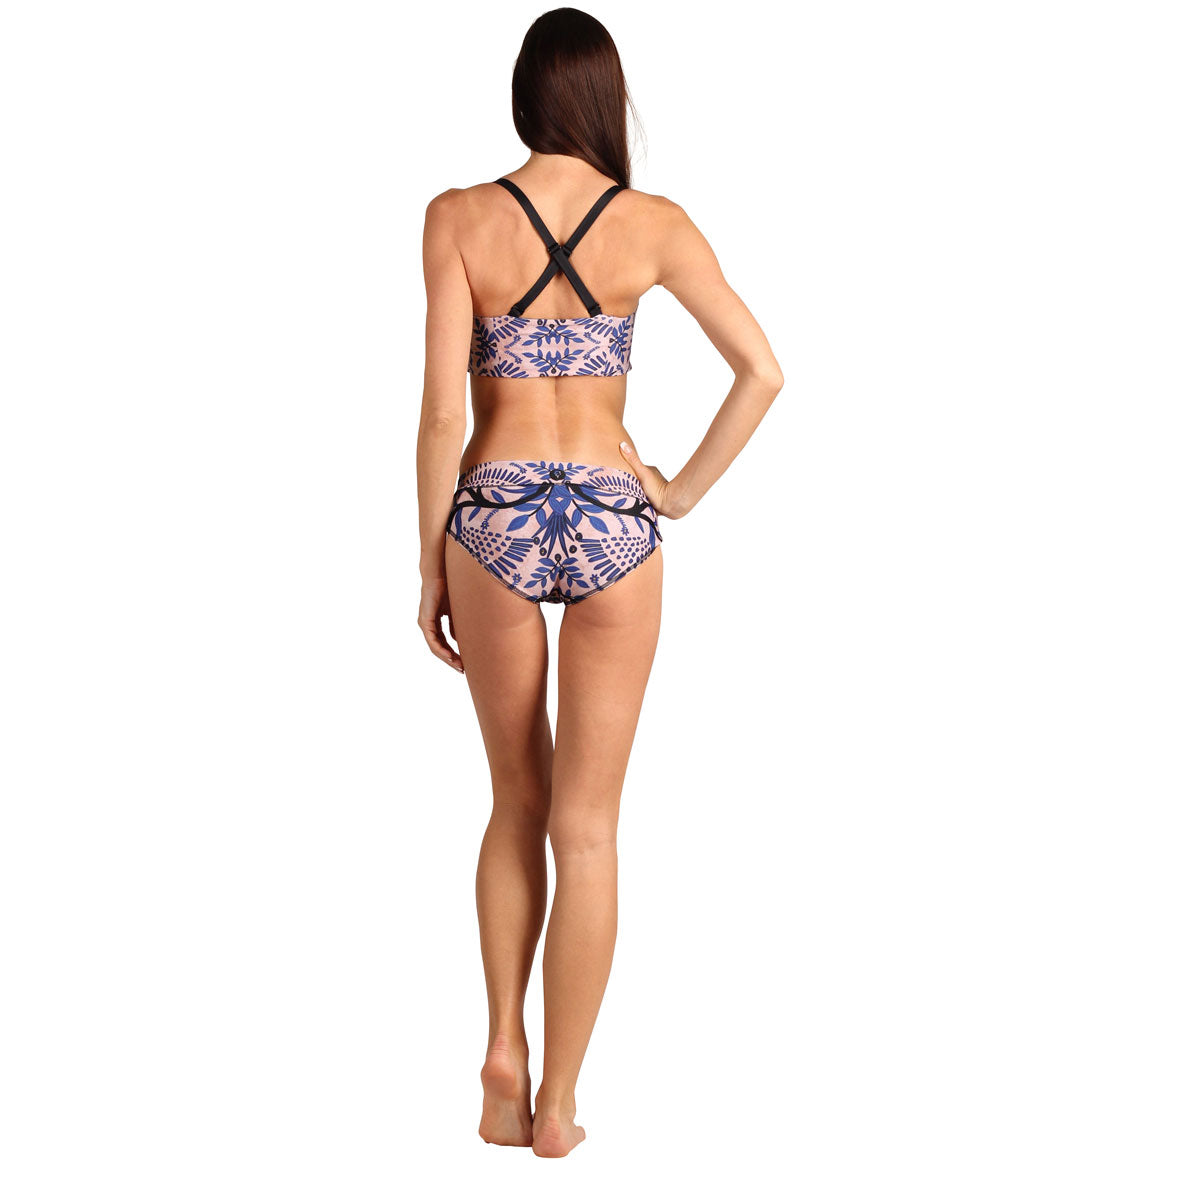 YD SWIM Desert Kiss Eco Bikini Bottom